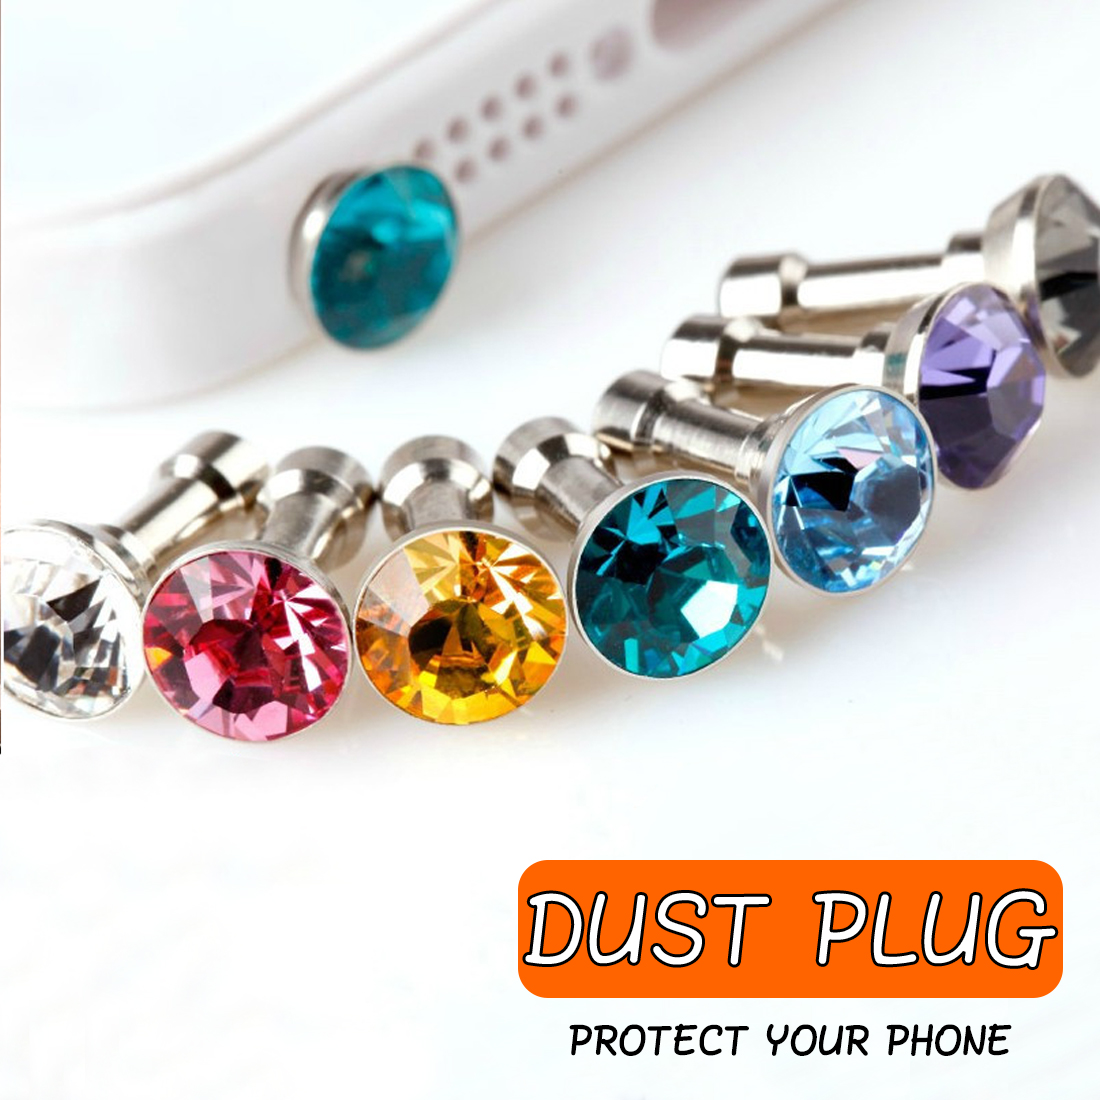 Marsnaska 5pcs Universal 3.5mm Diamond Dust Plug Mobile Phone accessories gadgets Earphone Plugs For iPhone 5 5s 6 6s